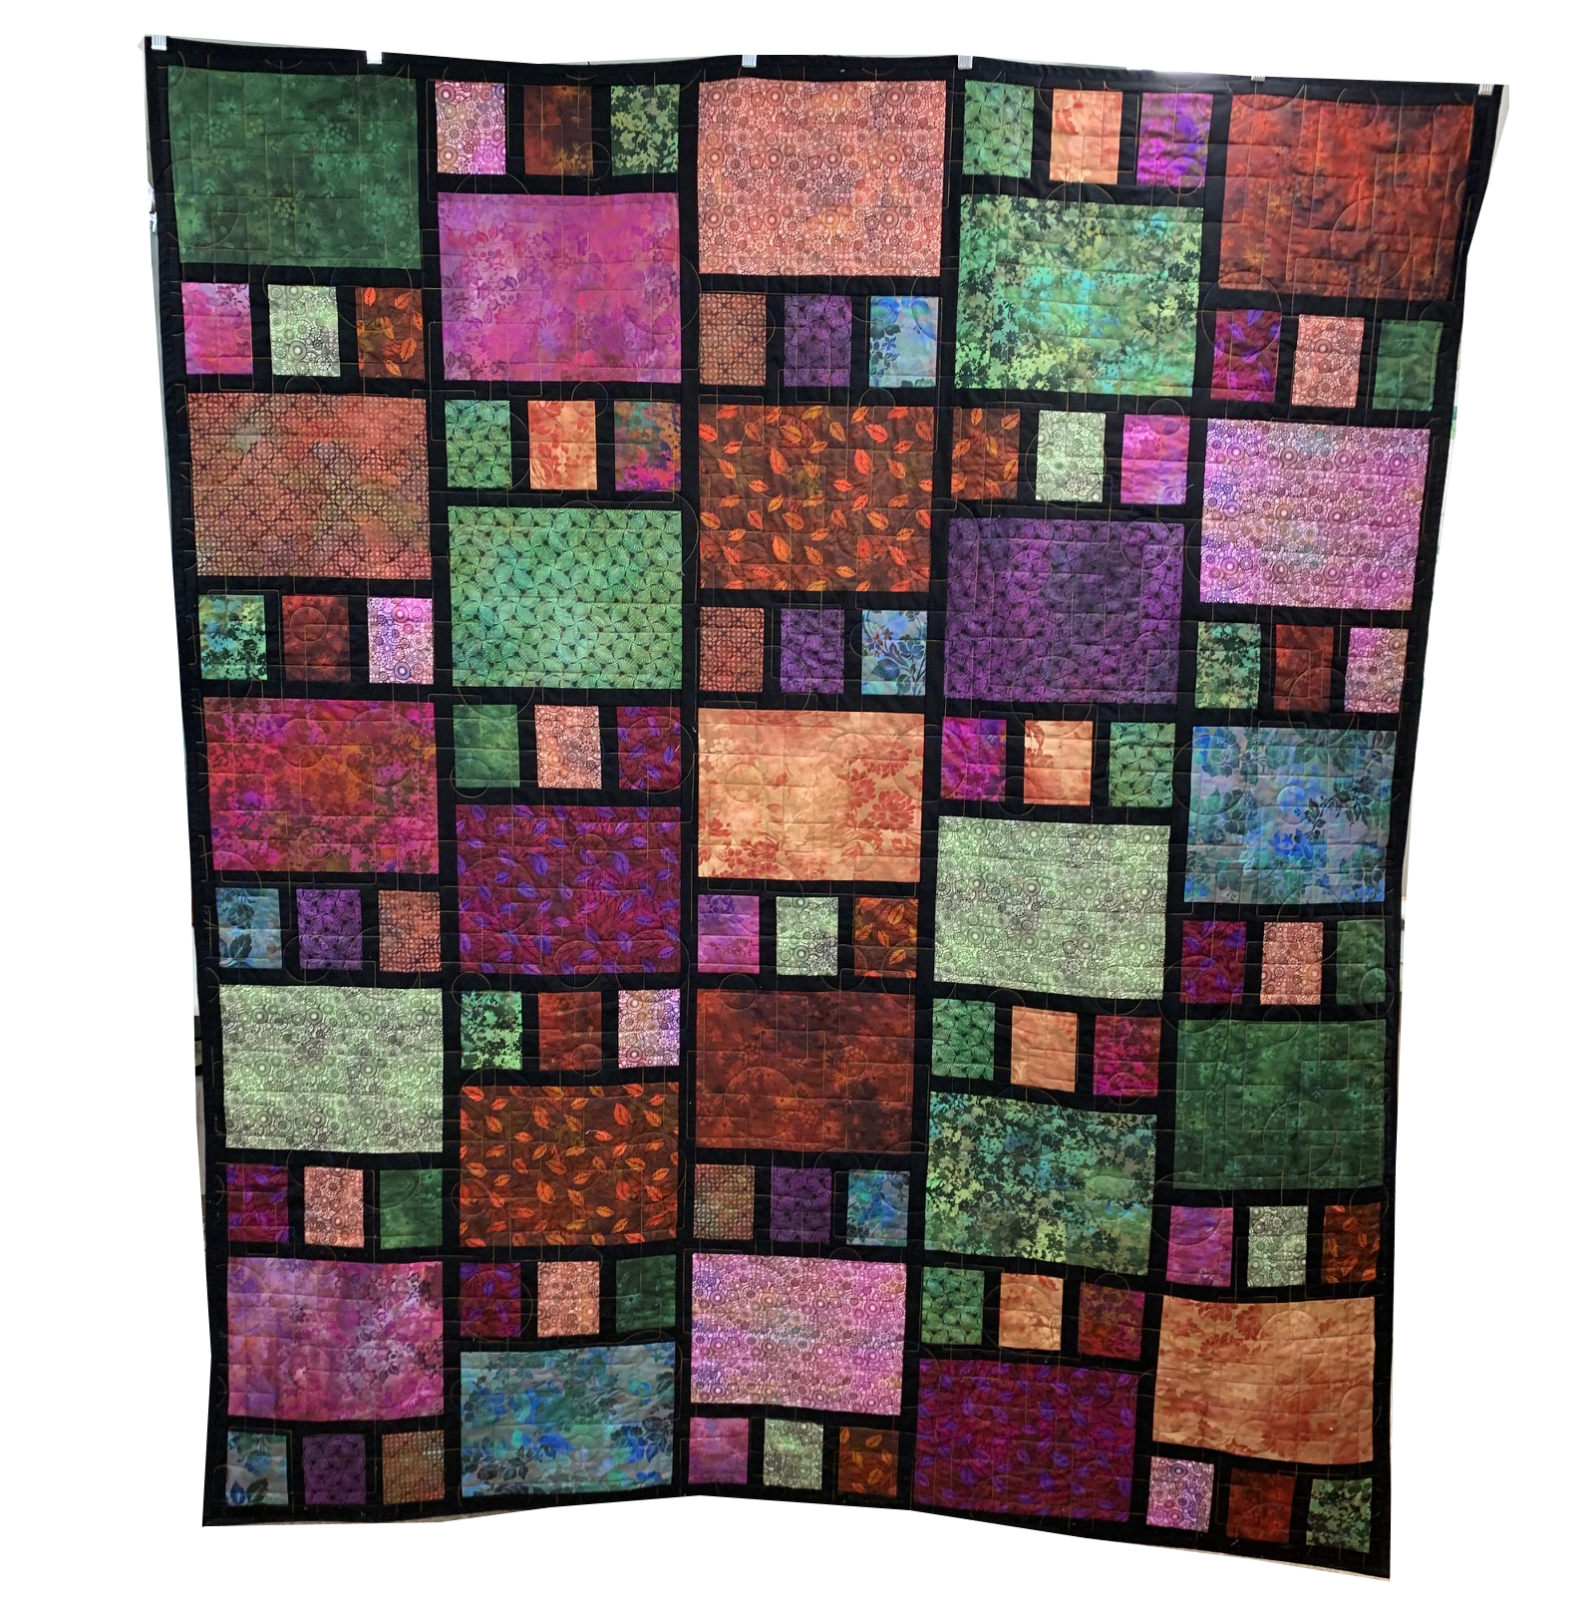 Craftsman Quilt Kit - Create This Stunning Quilt